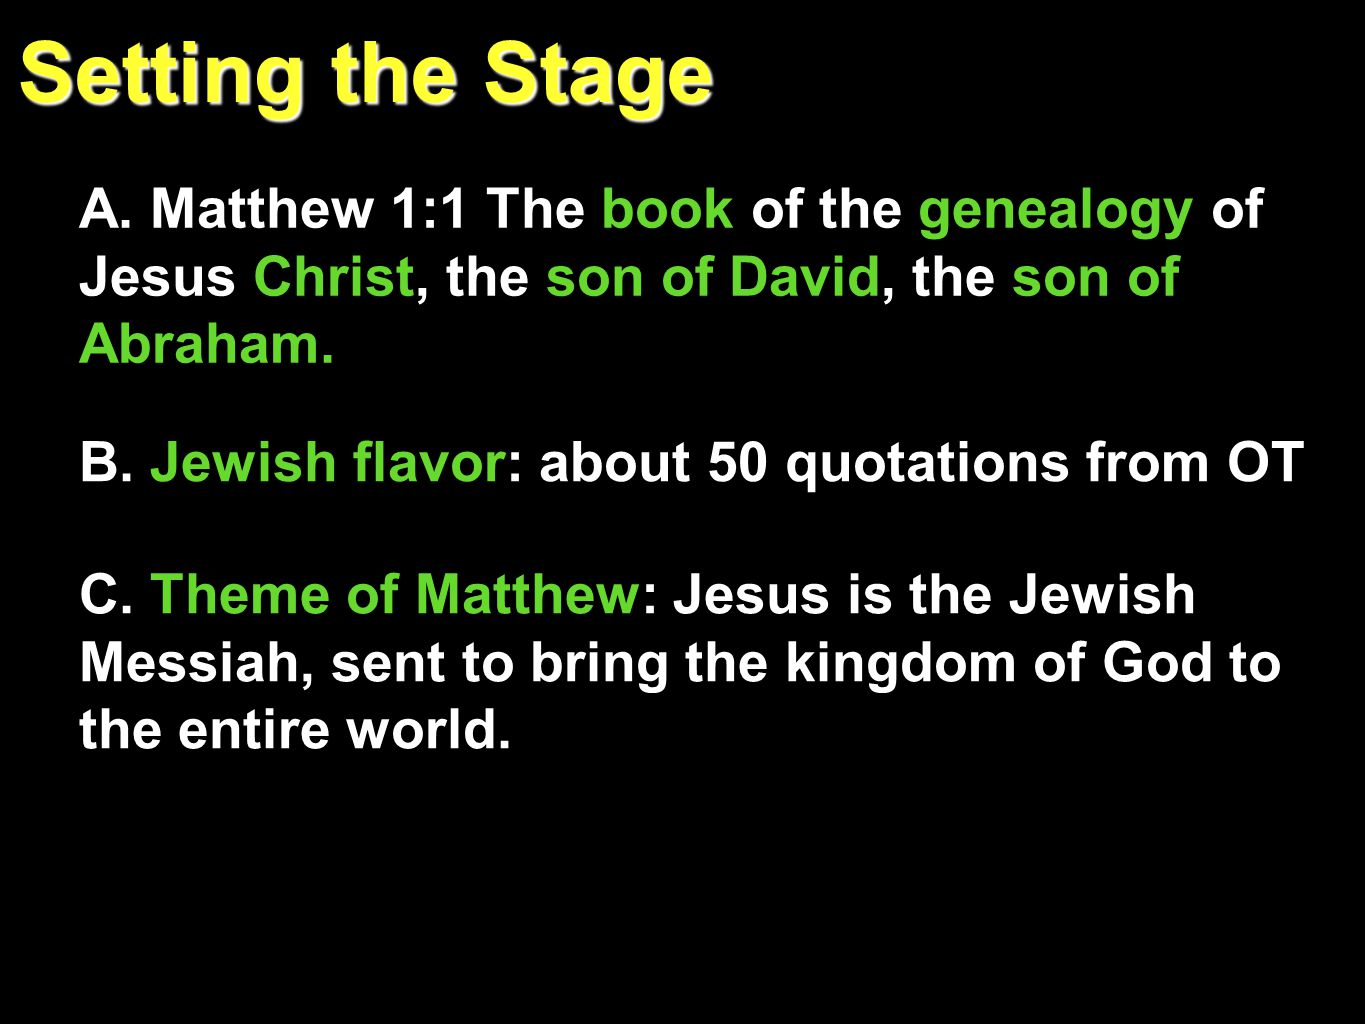 Setting the Stage A. Matthew 1:1 The book of the genealogy of Jesus Christ, the son of David, the son of Abraham. B. Jewish flavor: about 50 quotation